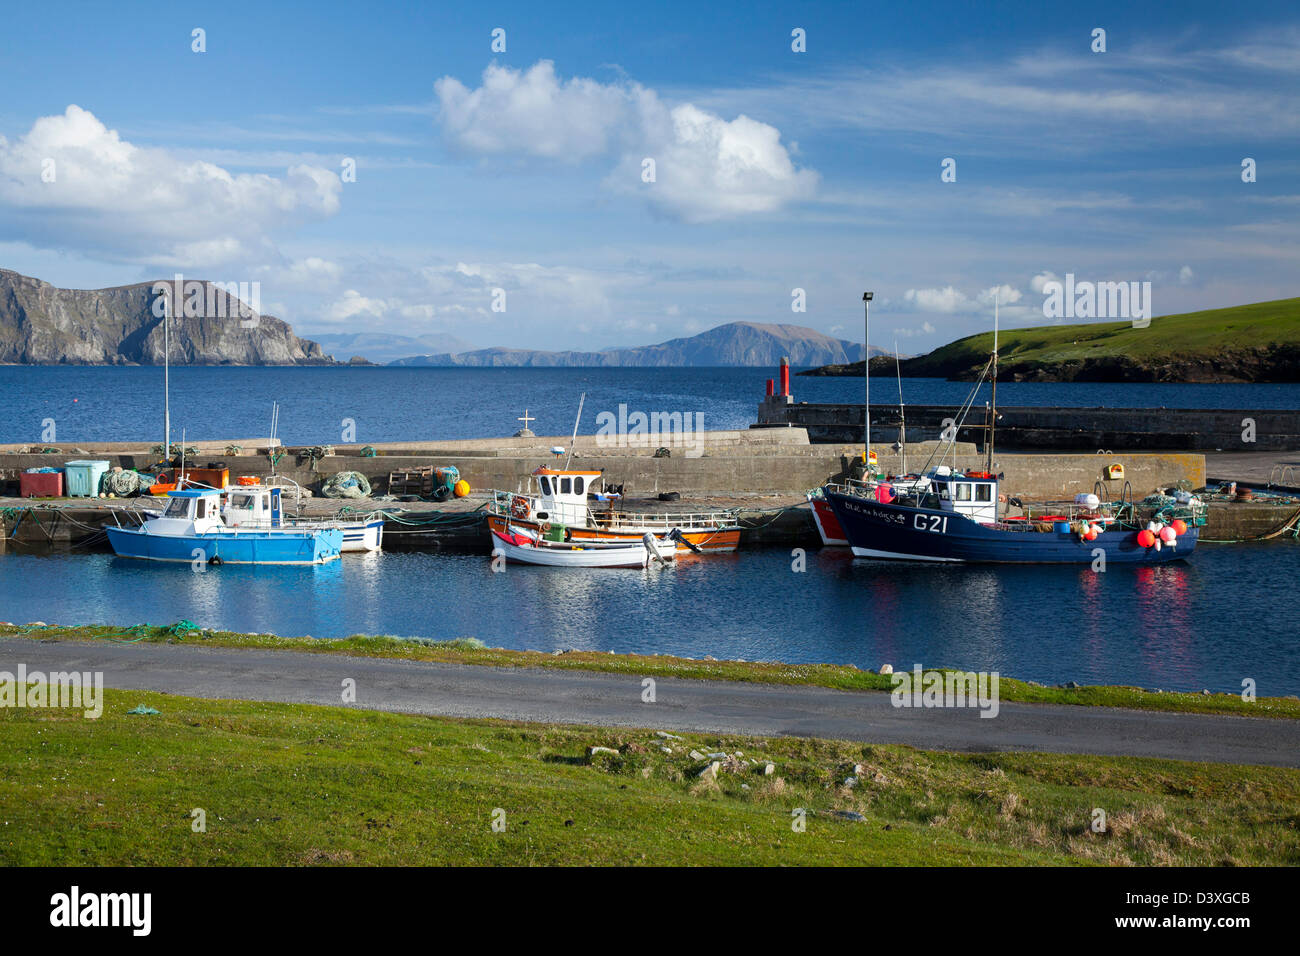 Fishing Boats at Purteen Harbour, Achill Island, County Mayo, Ireland. - Stock Image